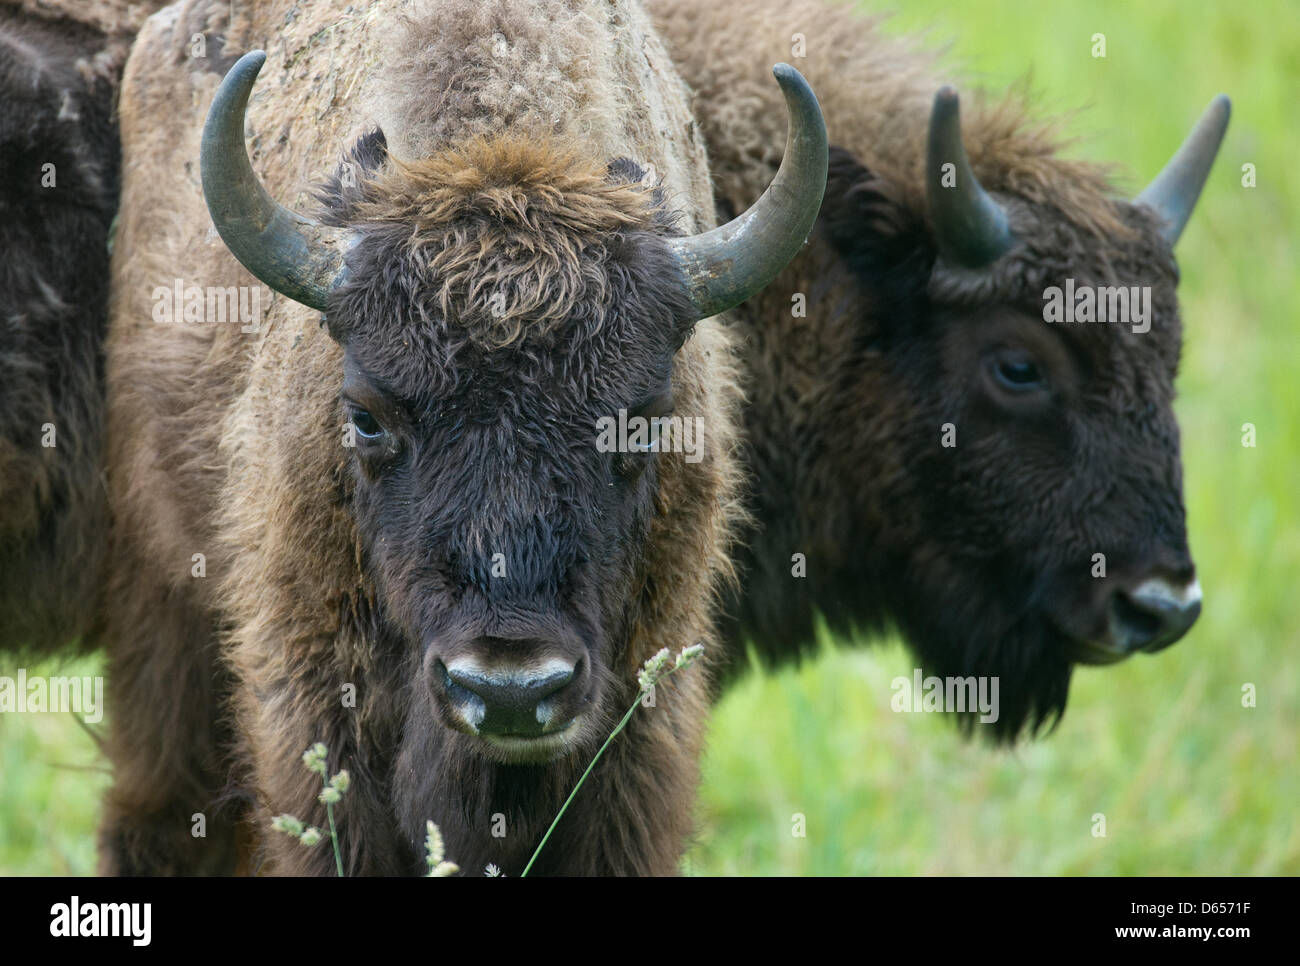 Two European bisons (Bison bonasus) stand on a meadow in the national park Unteres Odertal in Criewen, Germany, - Stock Image